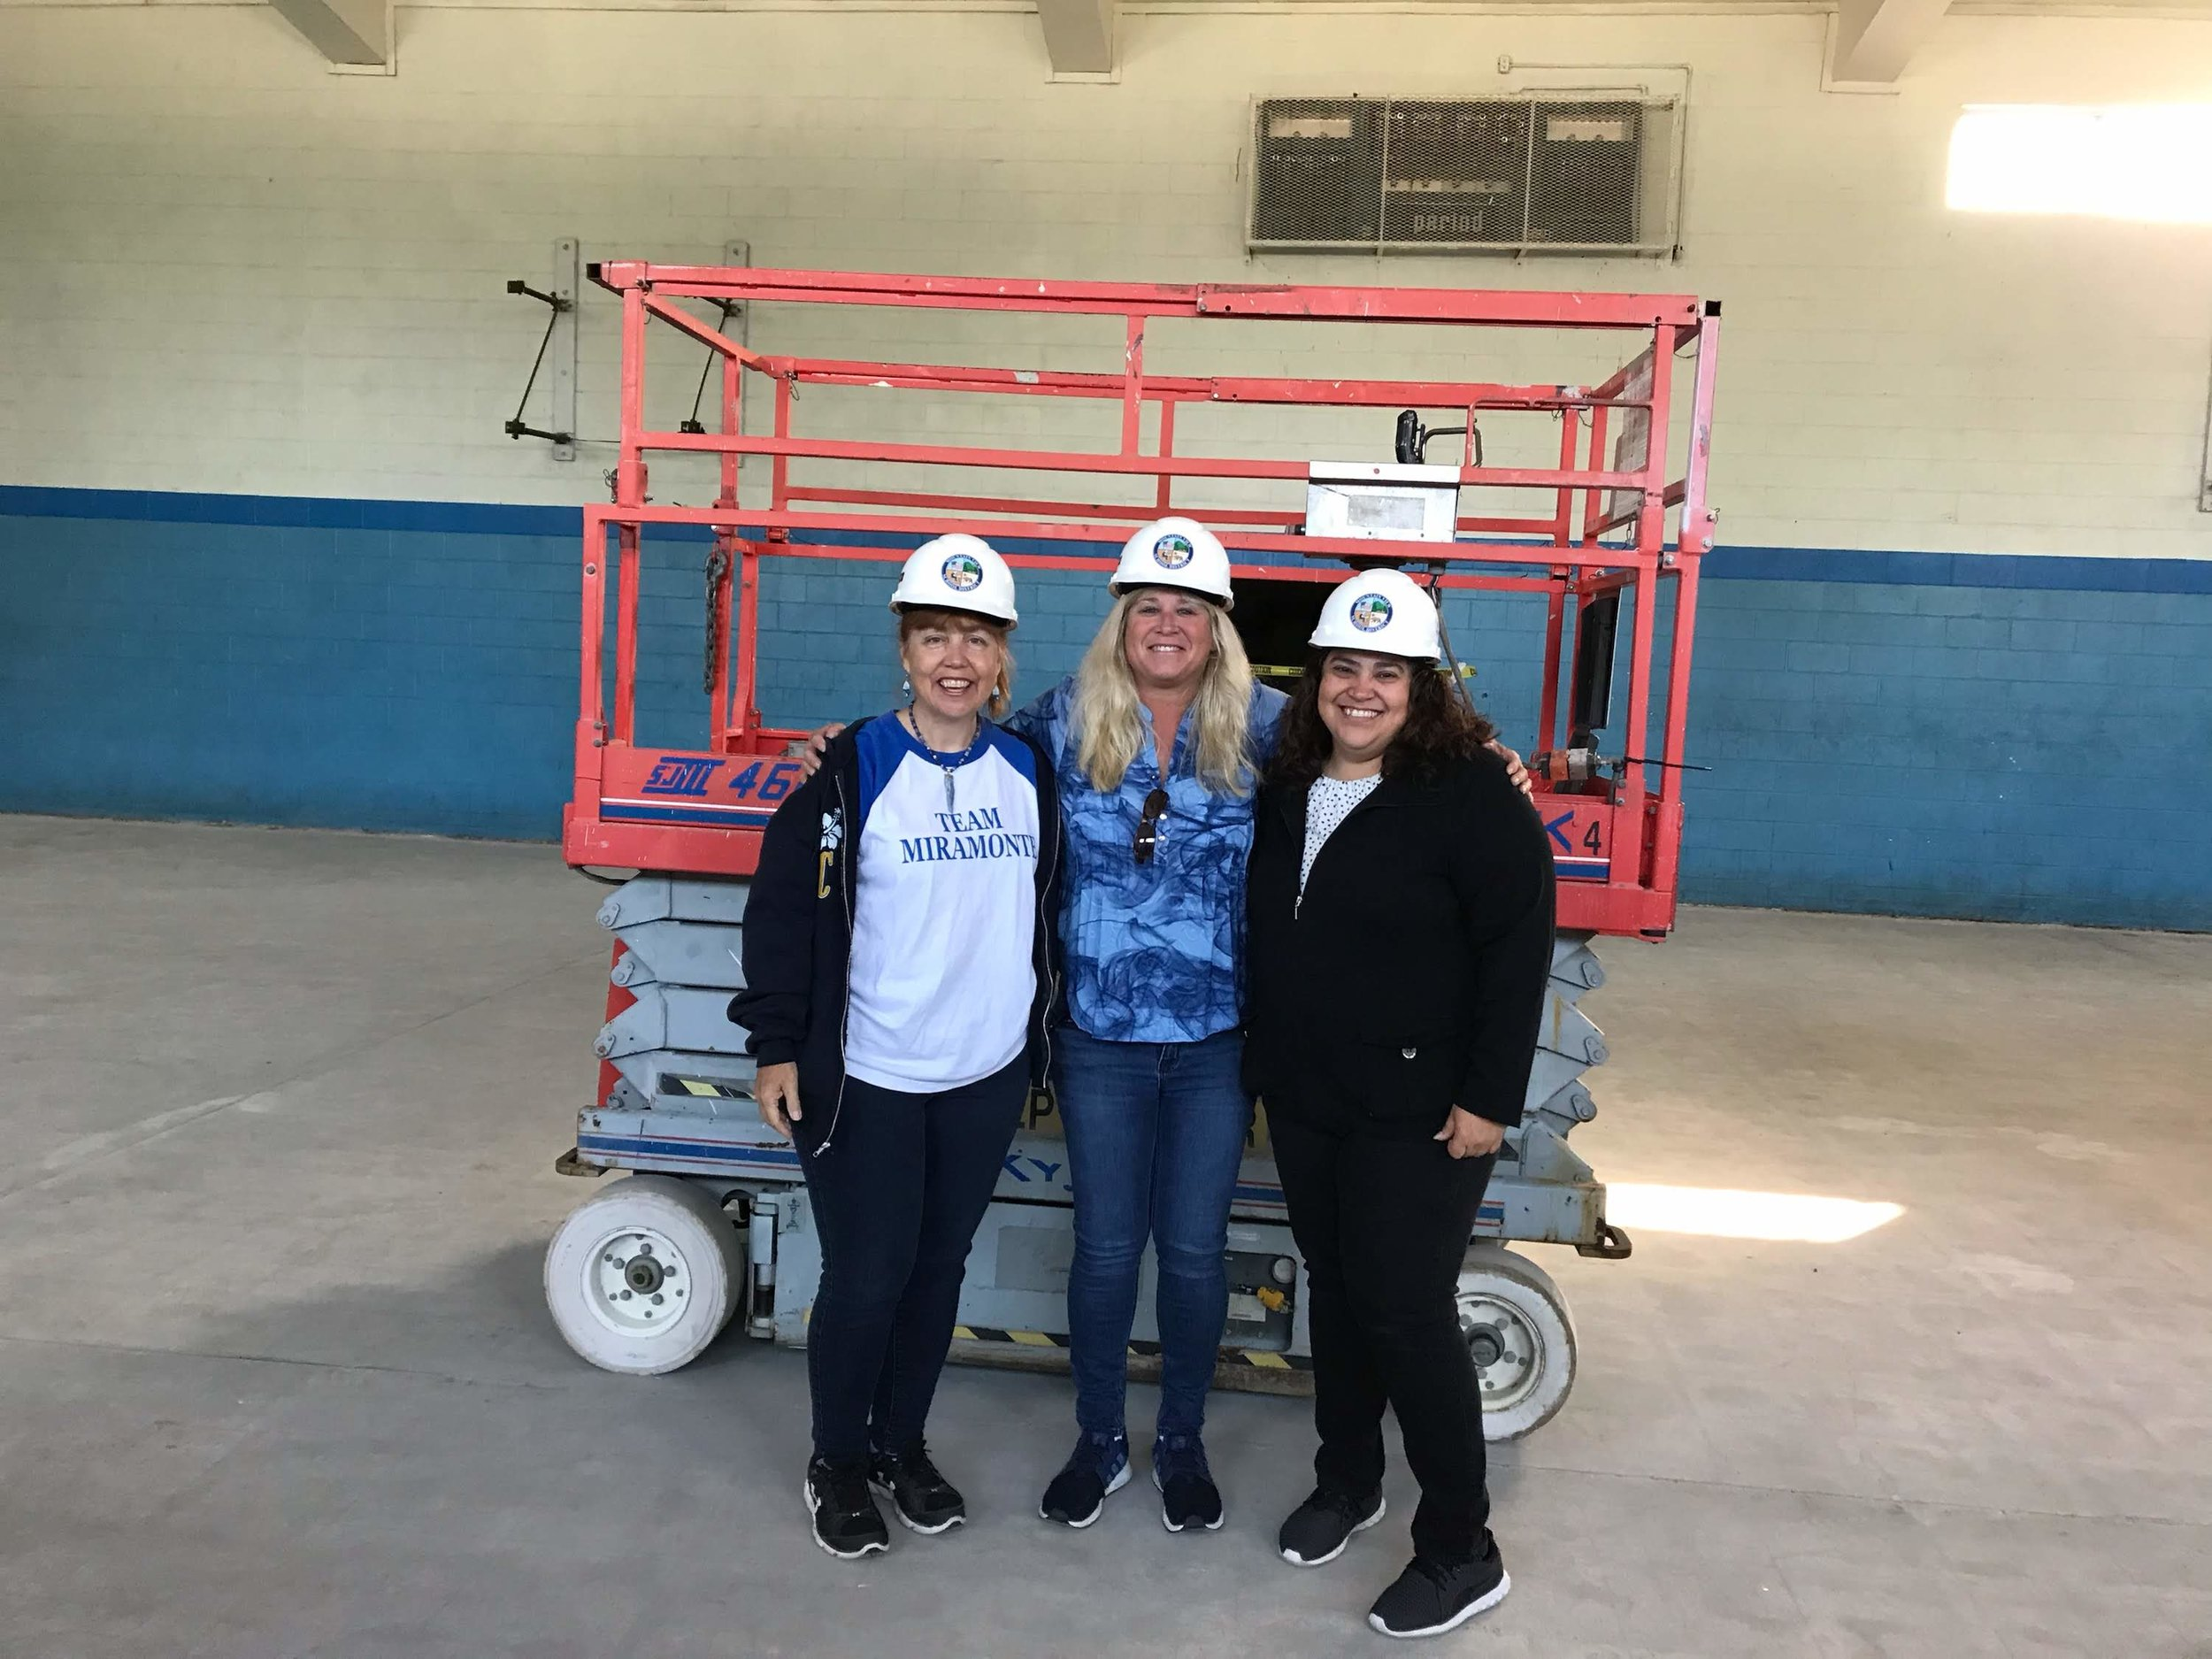 Left to Right: MVTA Members - President, Laura Gaber; Member At Large 4-6, Jenny Siebel; Member At Large Pre K-3, Brenda Lopez